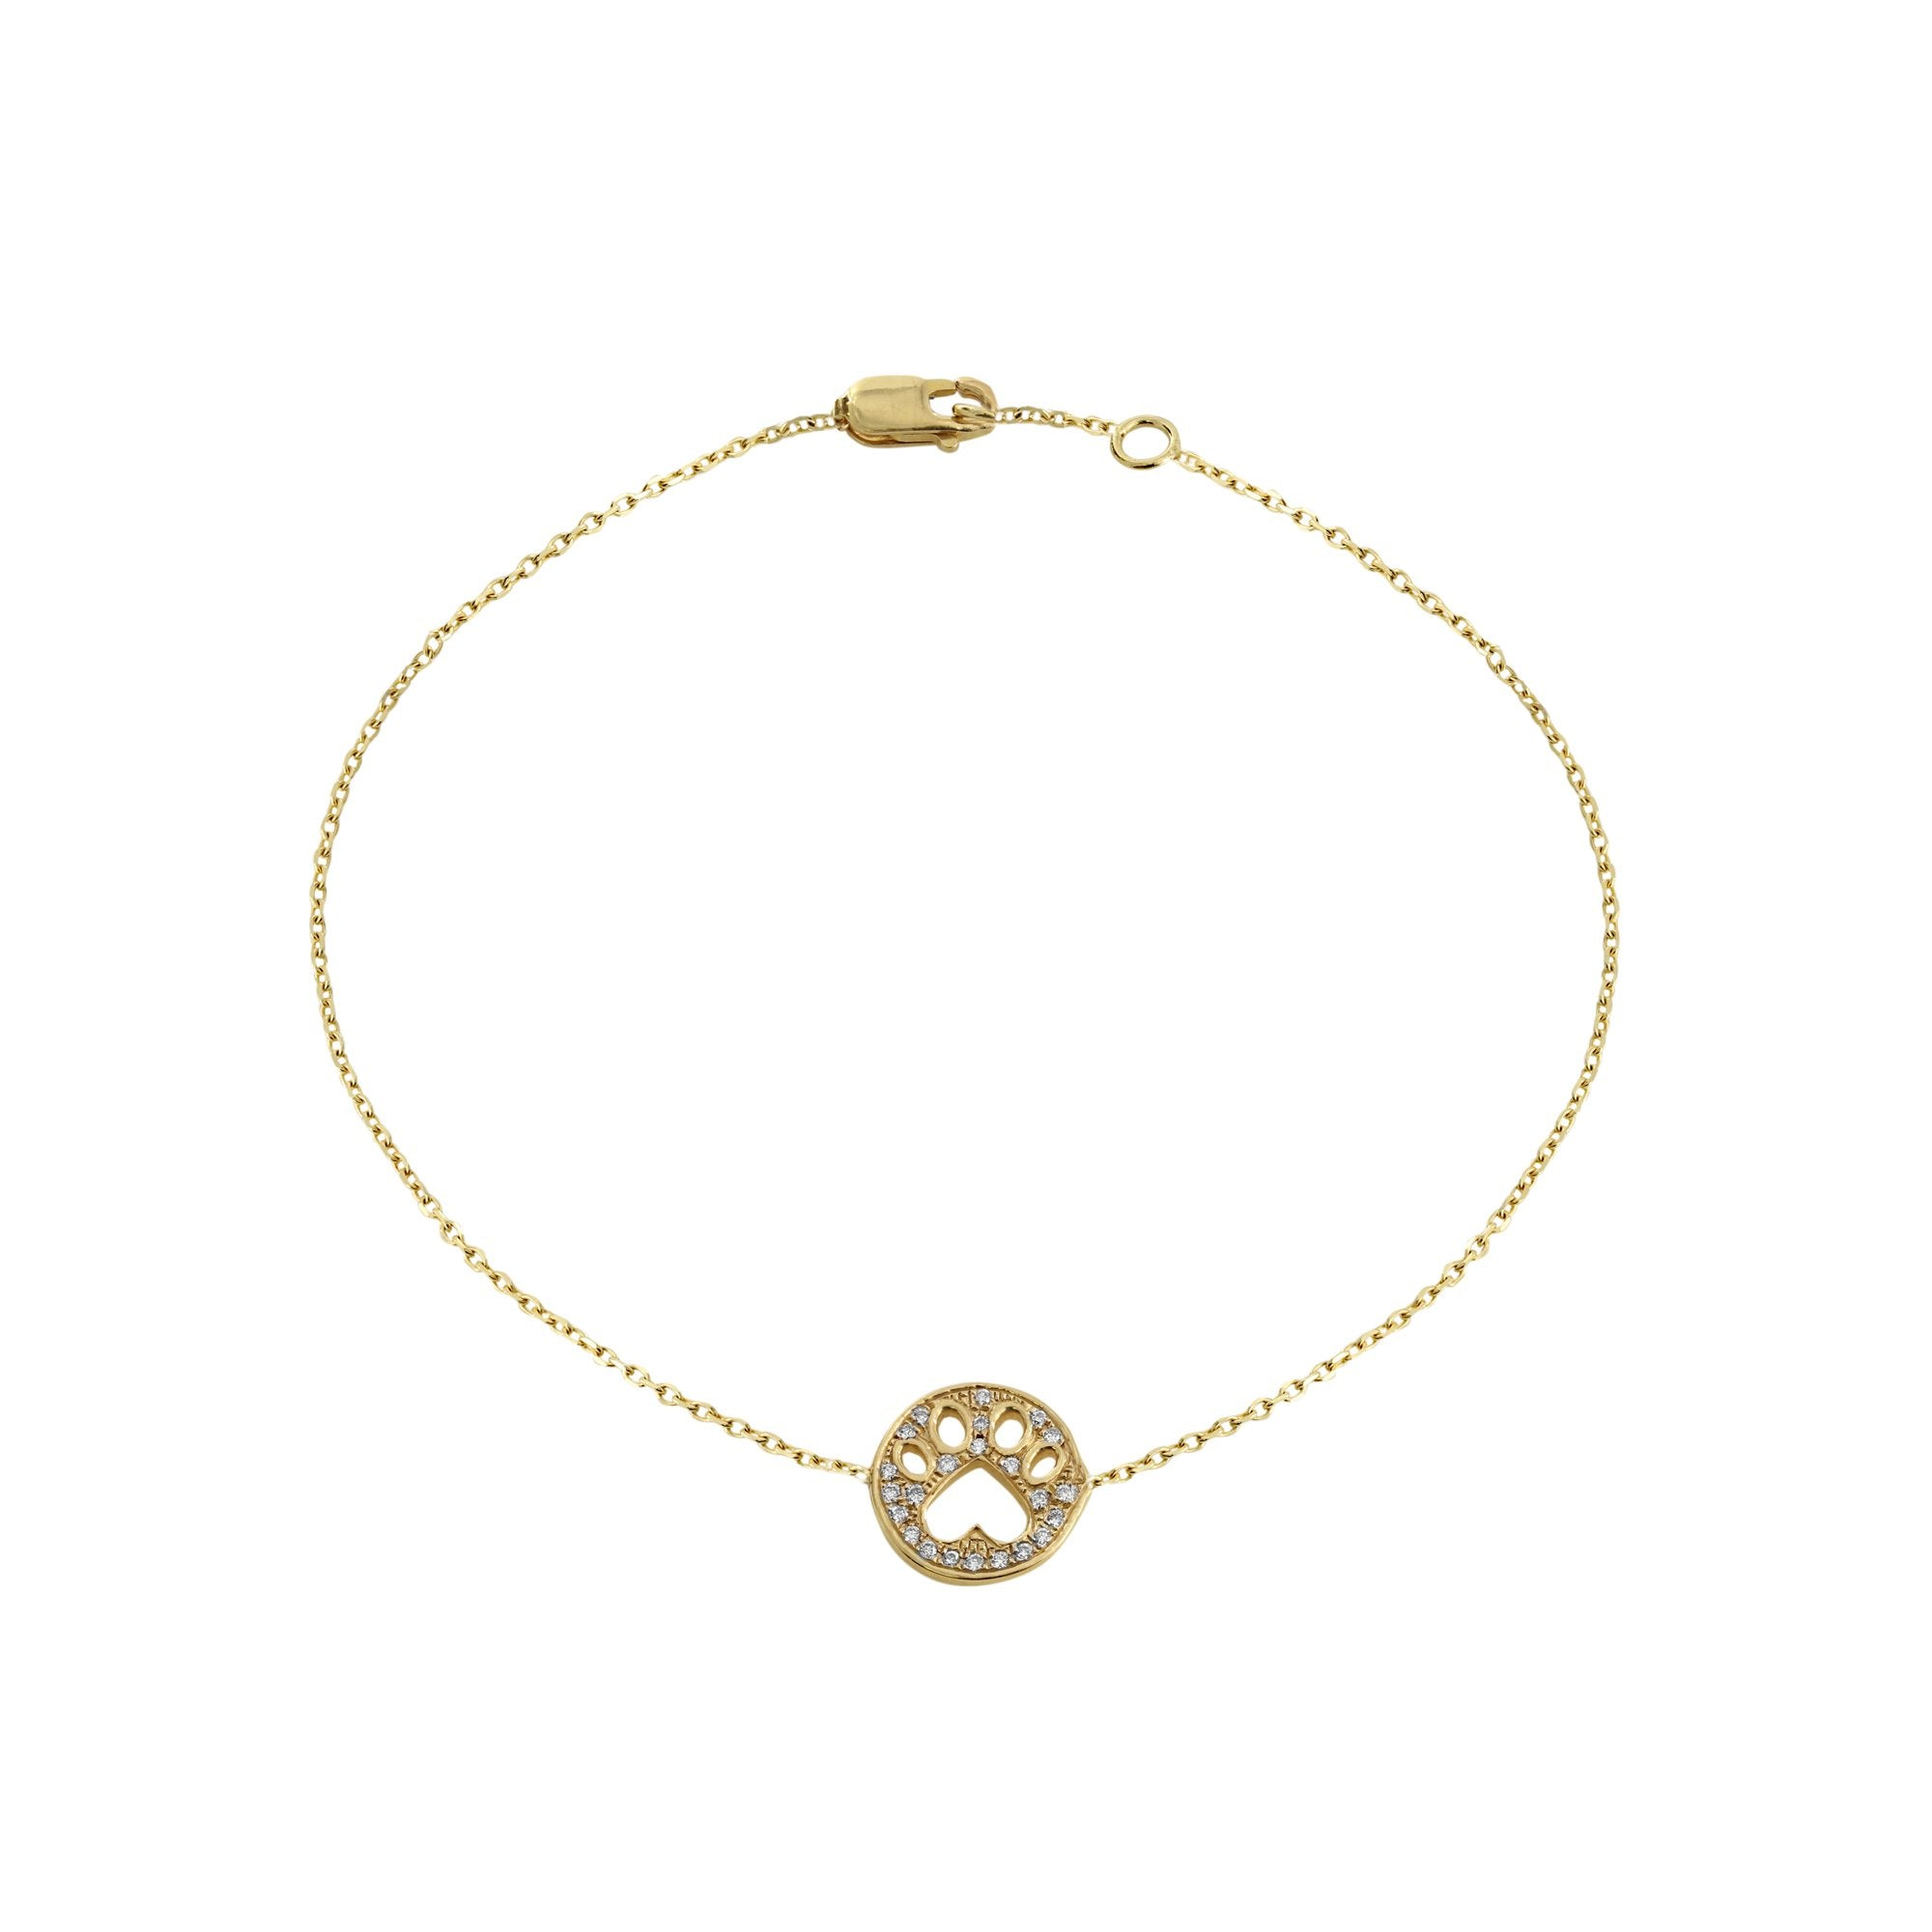 Our Cause for Paws Gold and Diamond Mini Paw Bracelet